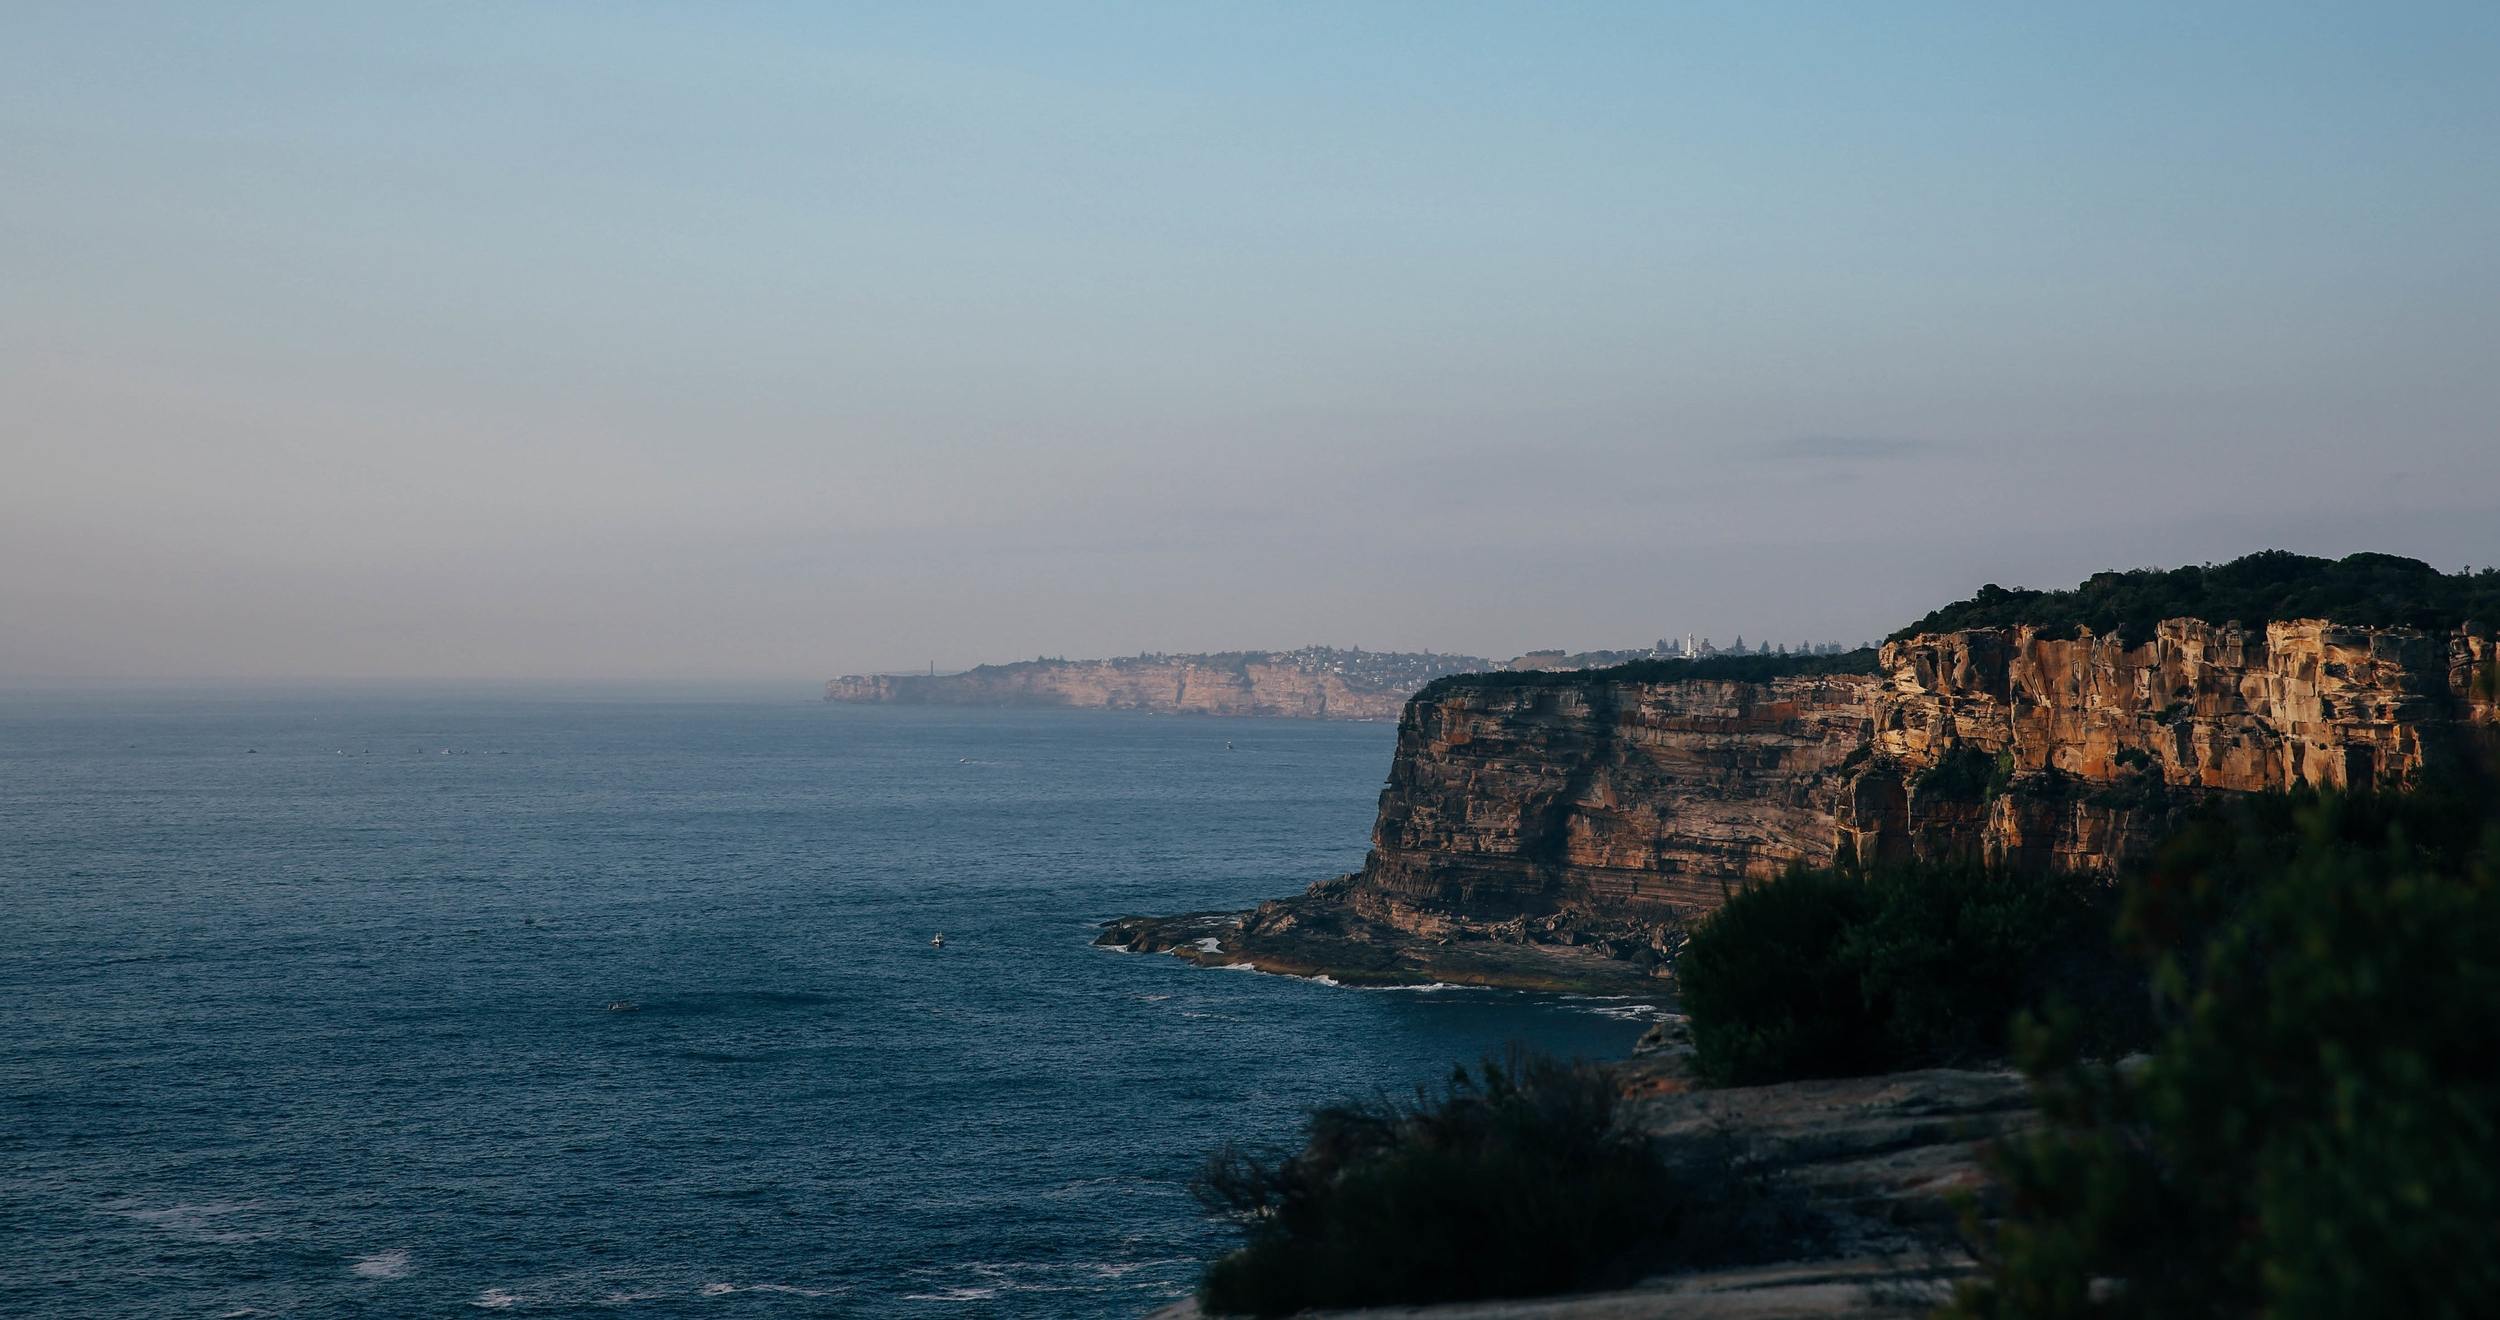 Morning escape at North Head, Manly - Australia.